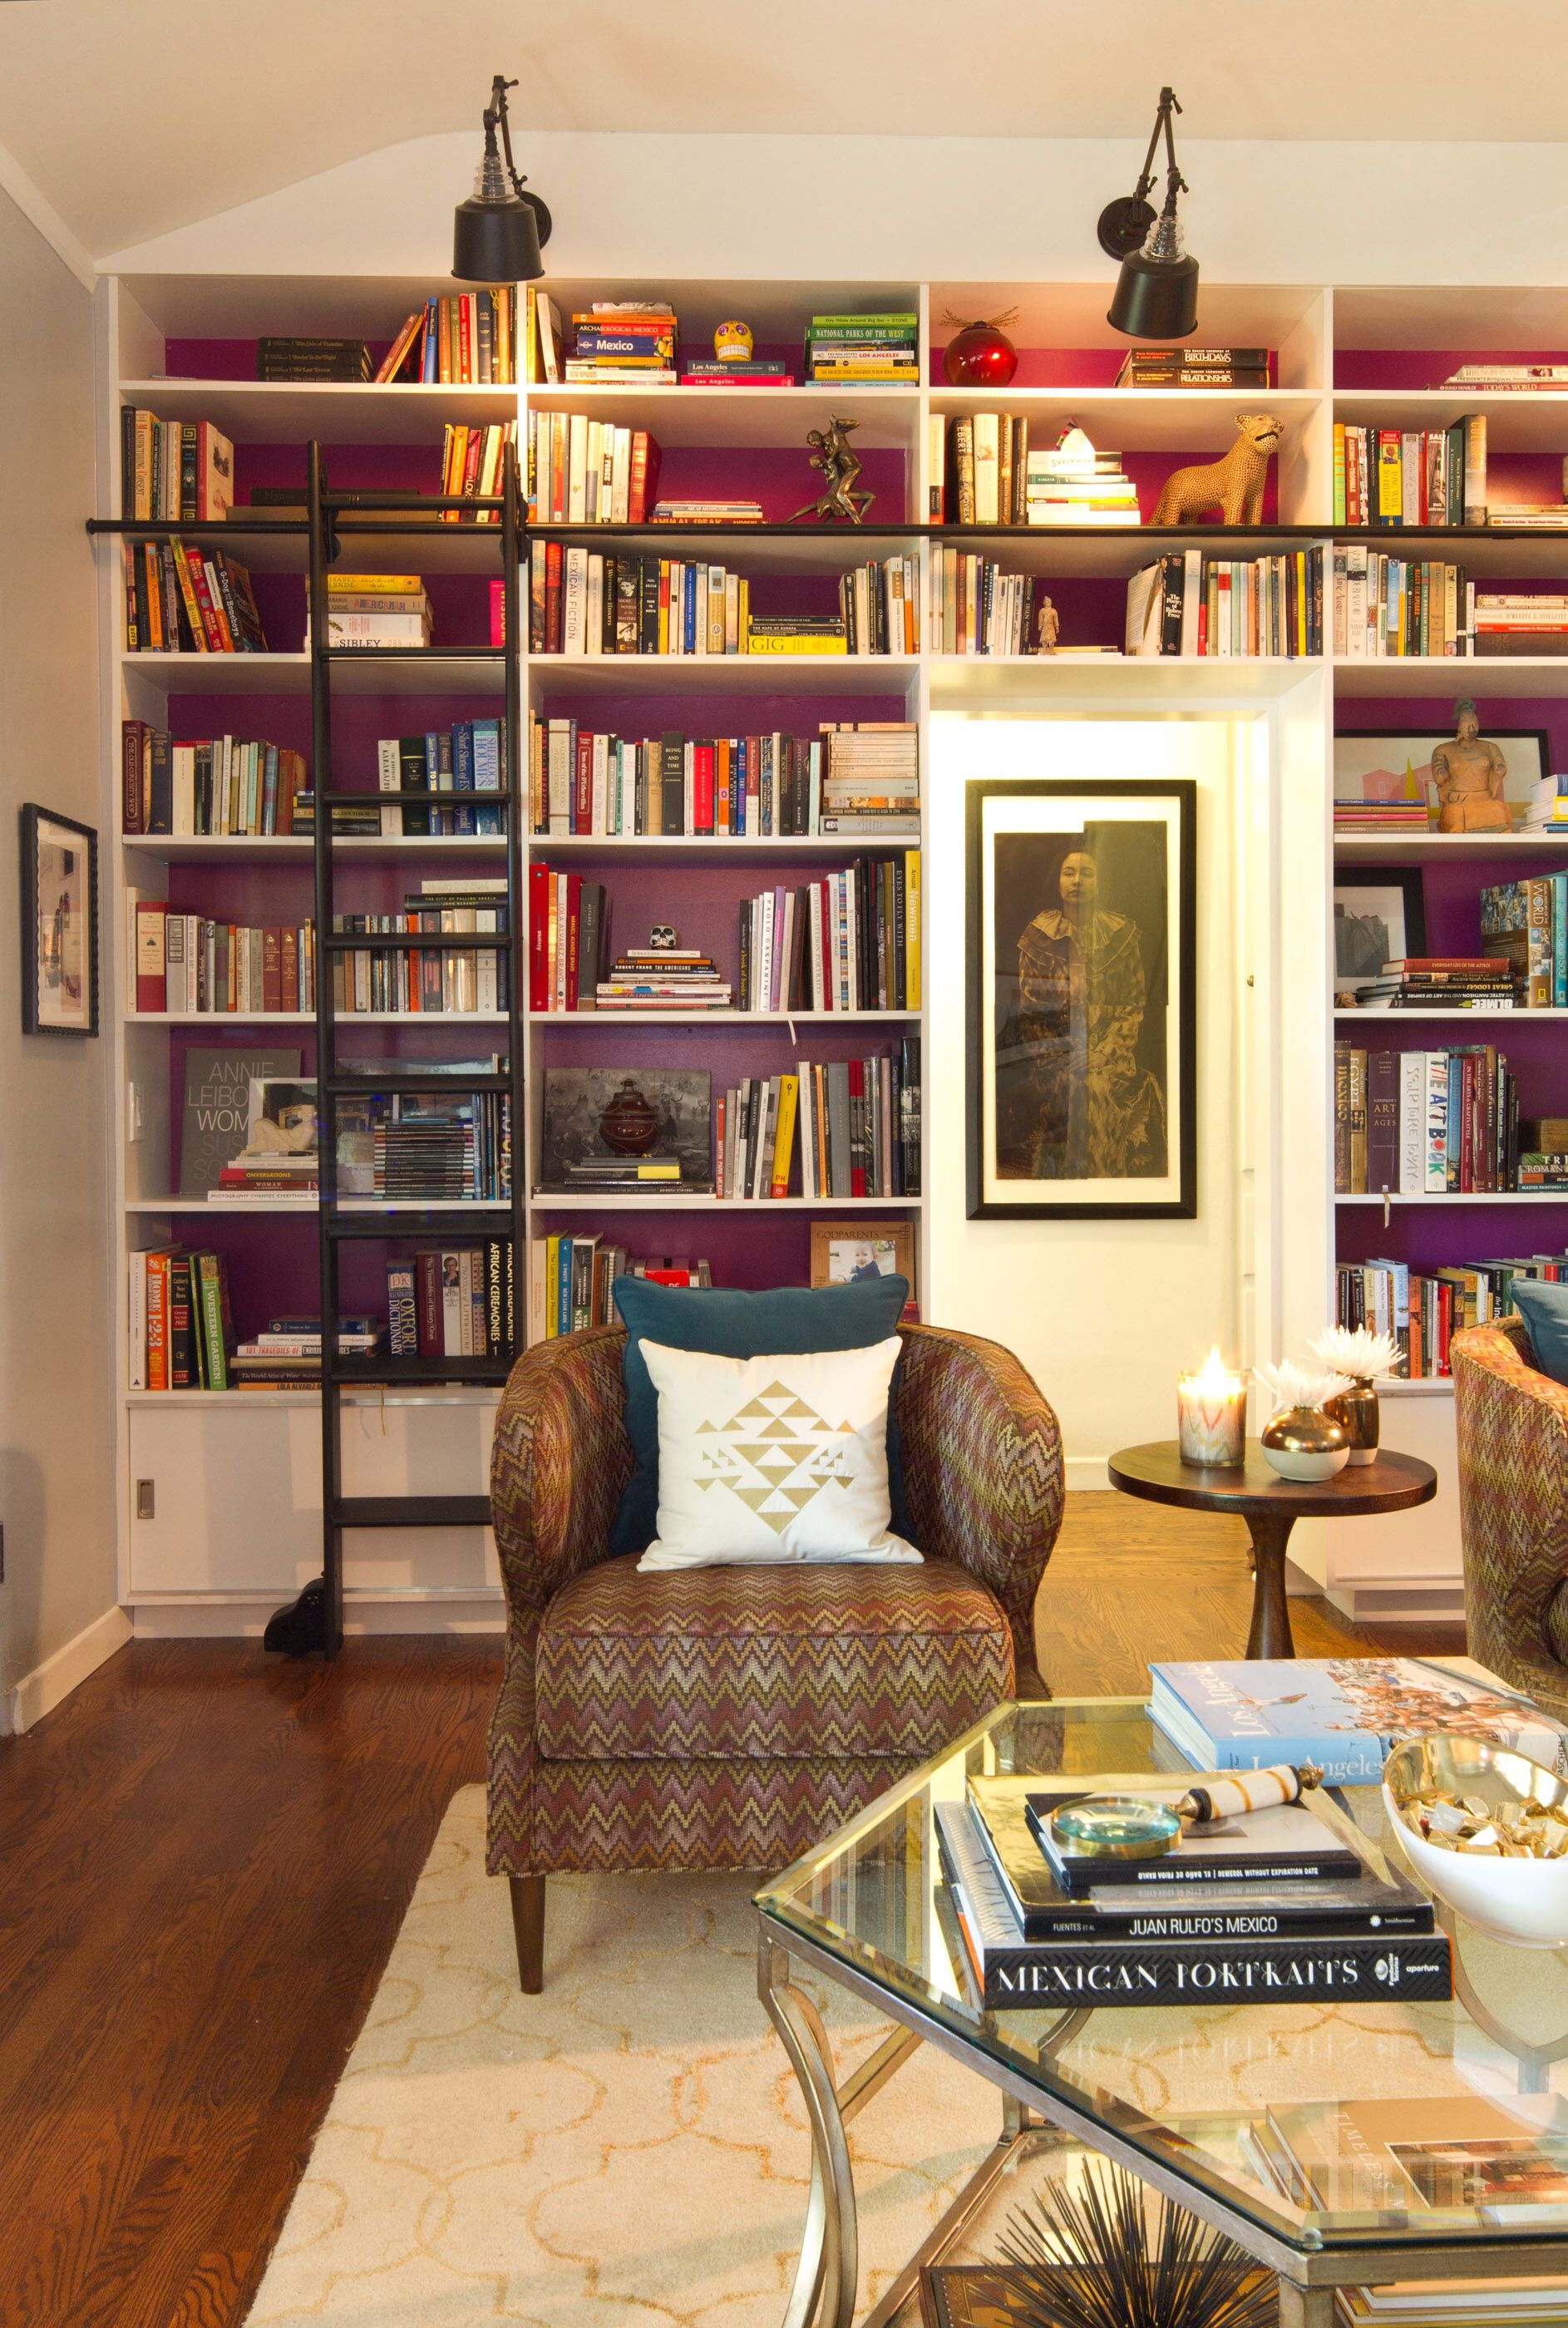 Home Library Furniture: Plum Bookcase With Library Ladder. #interiordesign